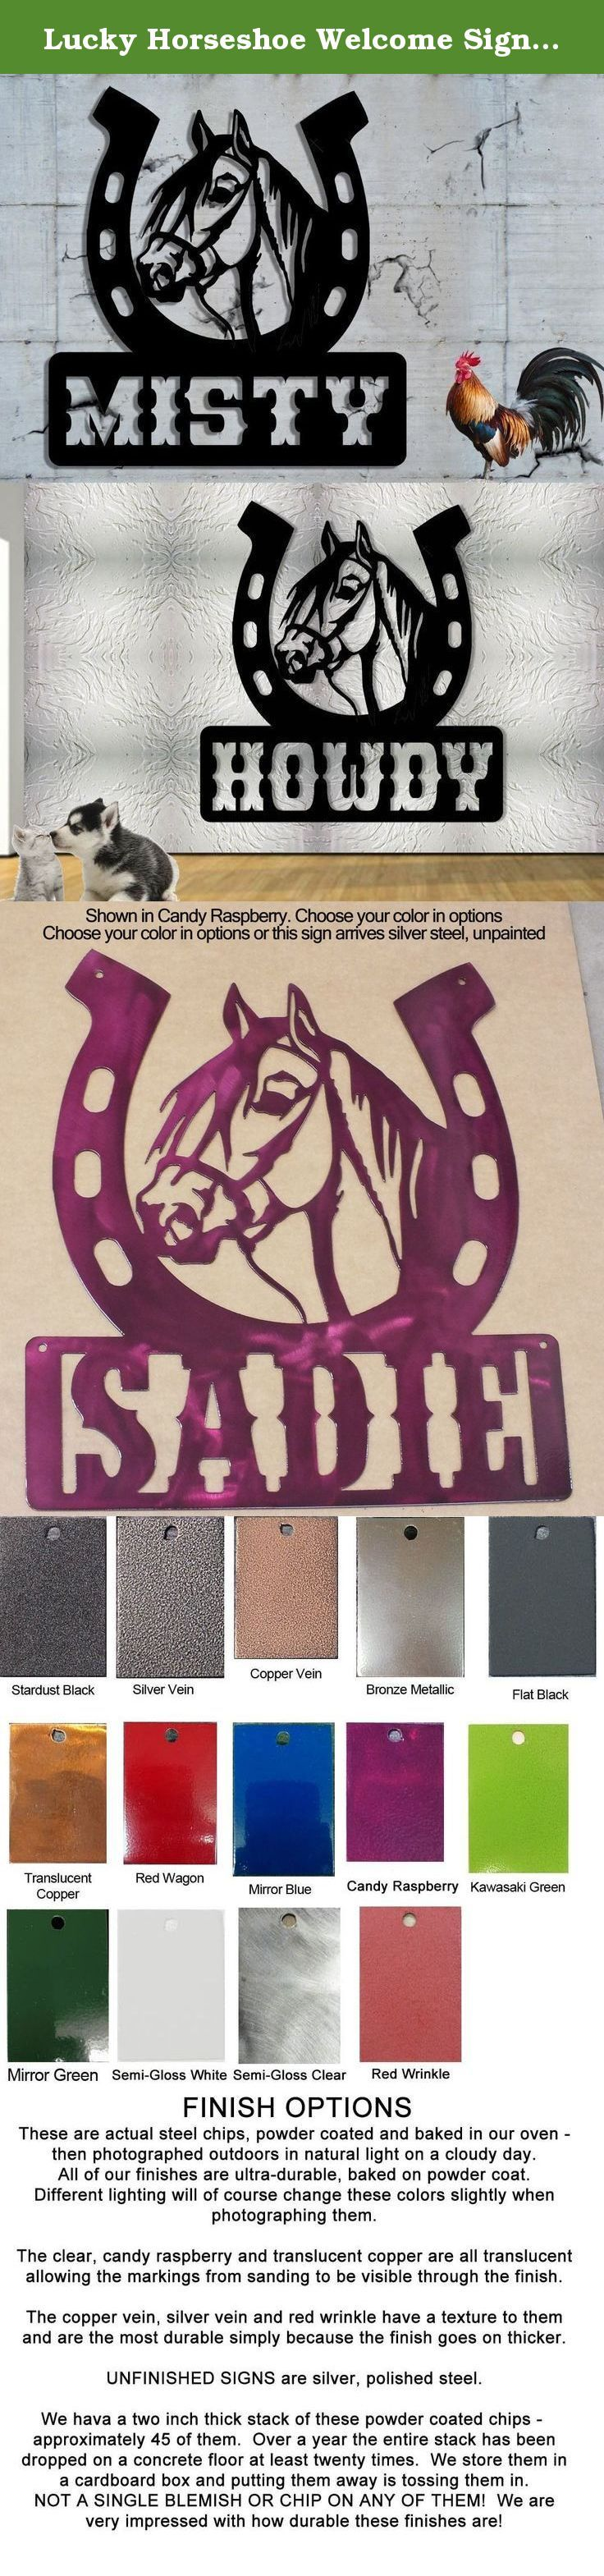 Lucky Horseshoe Welcome Sign - Horse shoe Stall Name Sign - Horse Sign 23 inches wide by 24 1/2 inches tall Metal Sign. Welcome to the ranch or . . . This sign has great potential - use your imagination. In addition to the welcome sign and horse name sign for your horse's stall it would make a great family name sign, bar / tavern sign, western wear store sign . . . The bottom portion is 7 inches tall so would accommodate two rows of 3 inch letters / numbers in the right font. I can also...